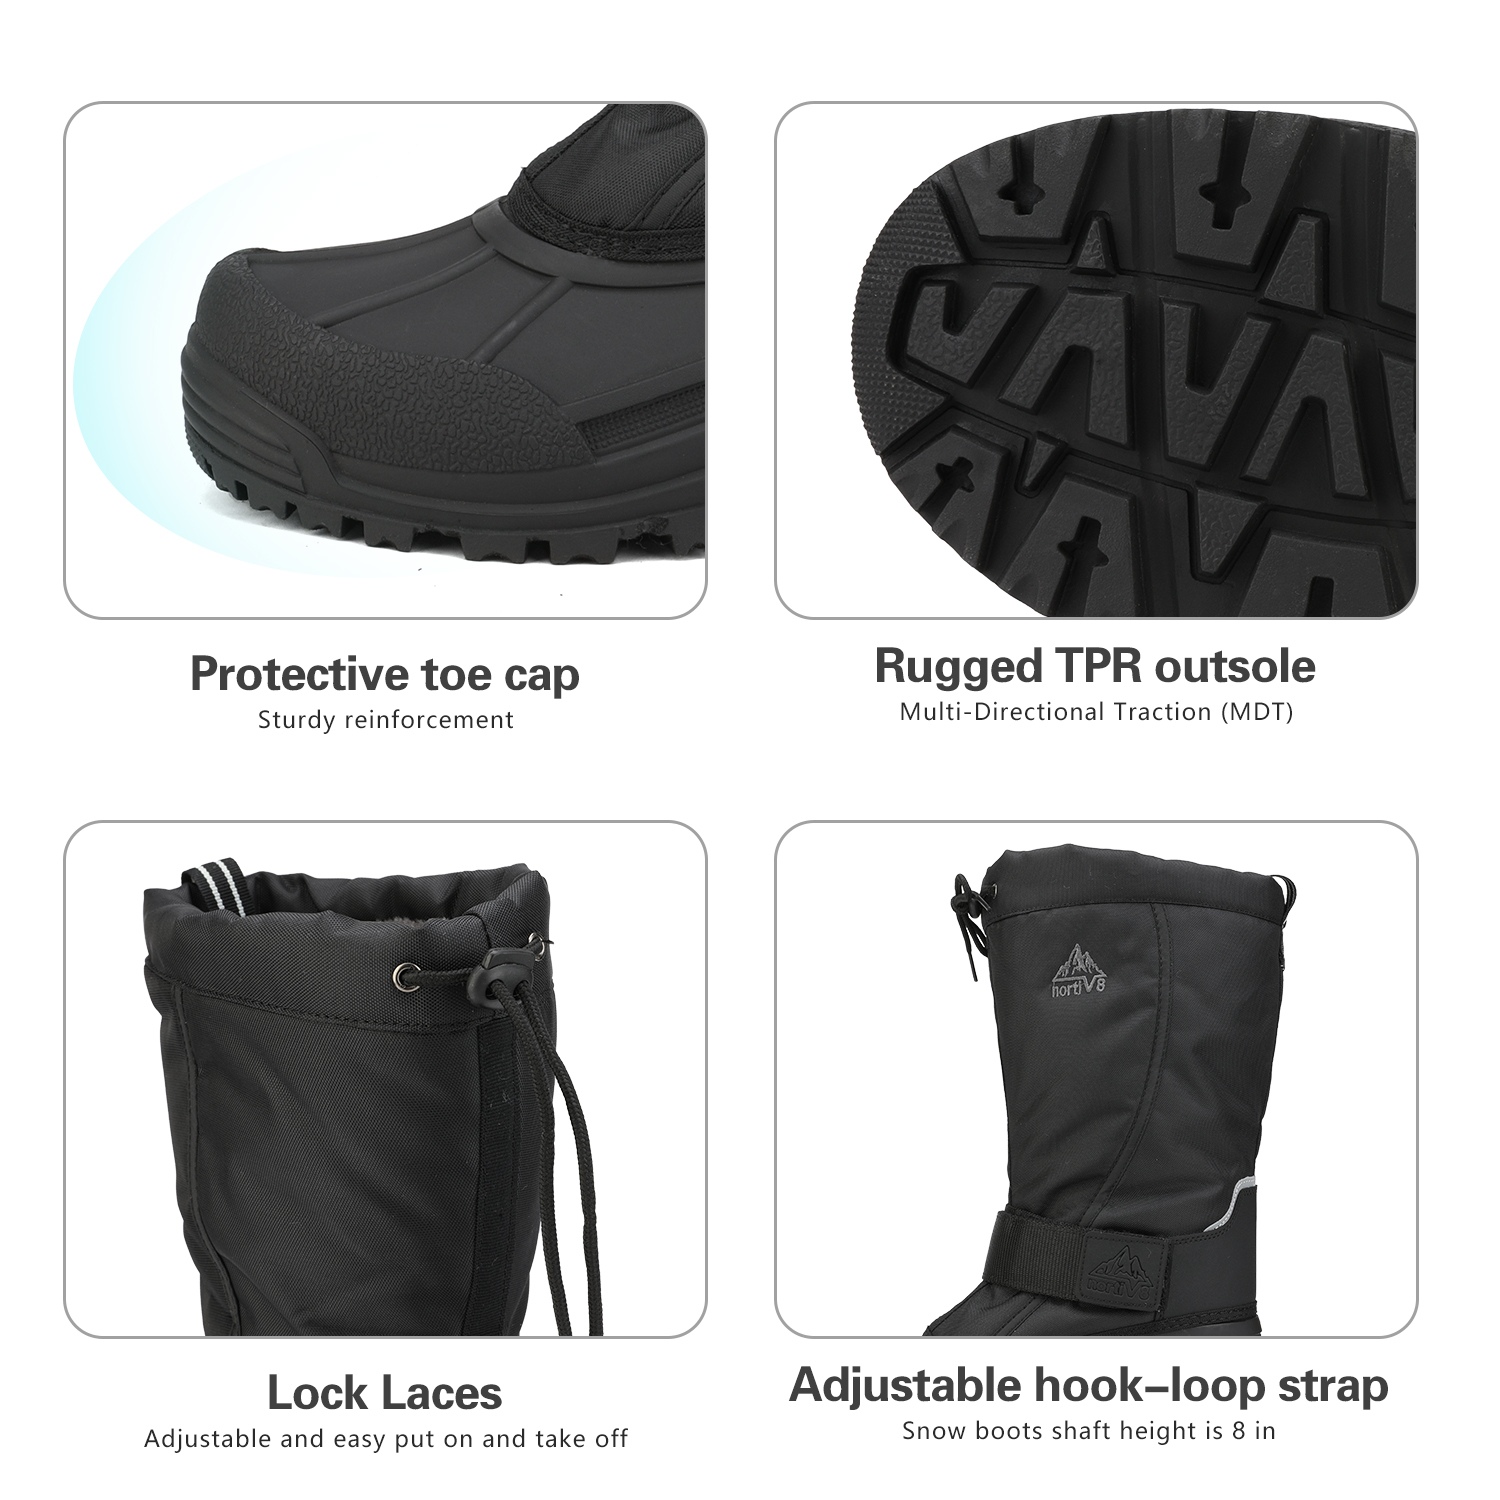 NORTIV-8-Men-039-s-Winter-Snow-Boots-Waterproof-Warm-Thermolite-Outdoor-Hiking-Boots thumbnail 6